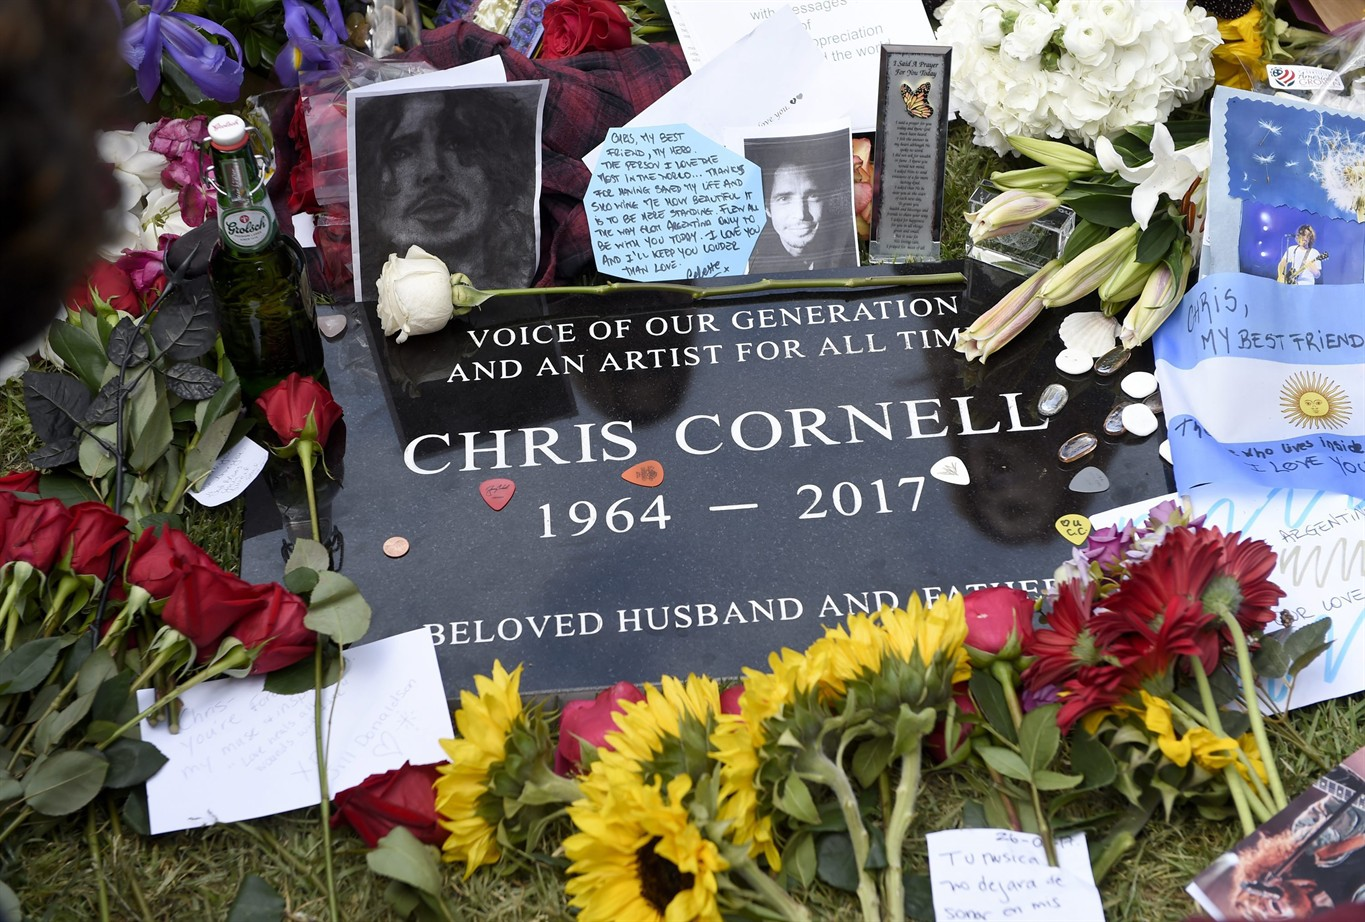 Rocker chris cornell remembered as voice of our generation 660 news a plaque marking chris cornells gravesite appears covered in guitar picks flowers photos and notes following the late singers funeral at the hollywood izmirmasajfo